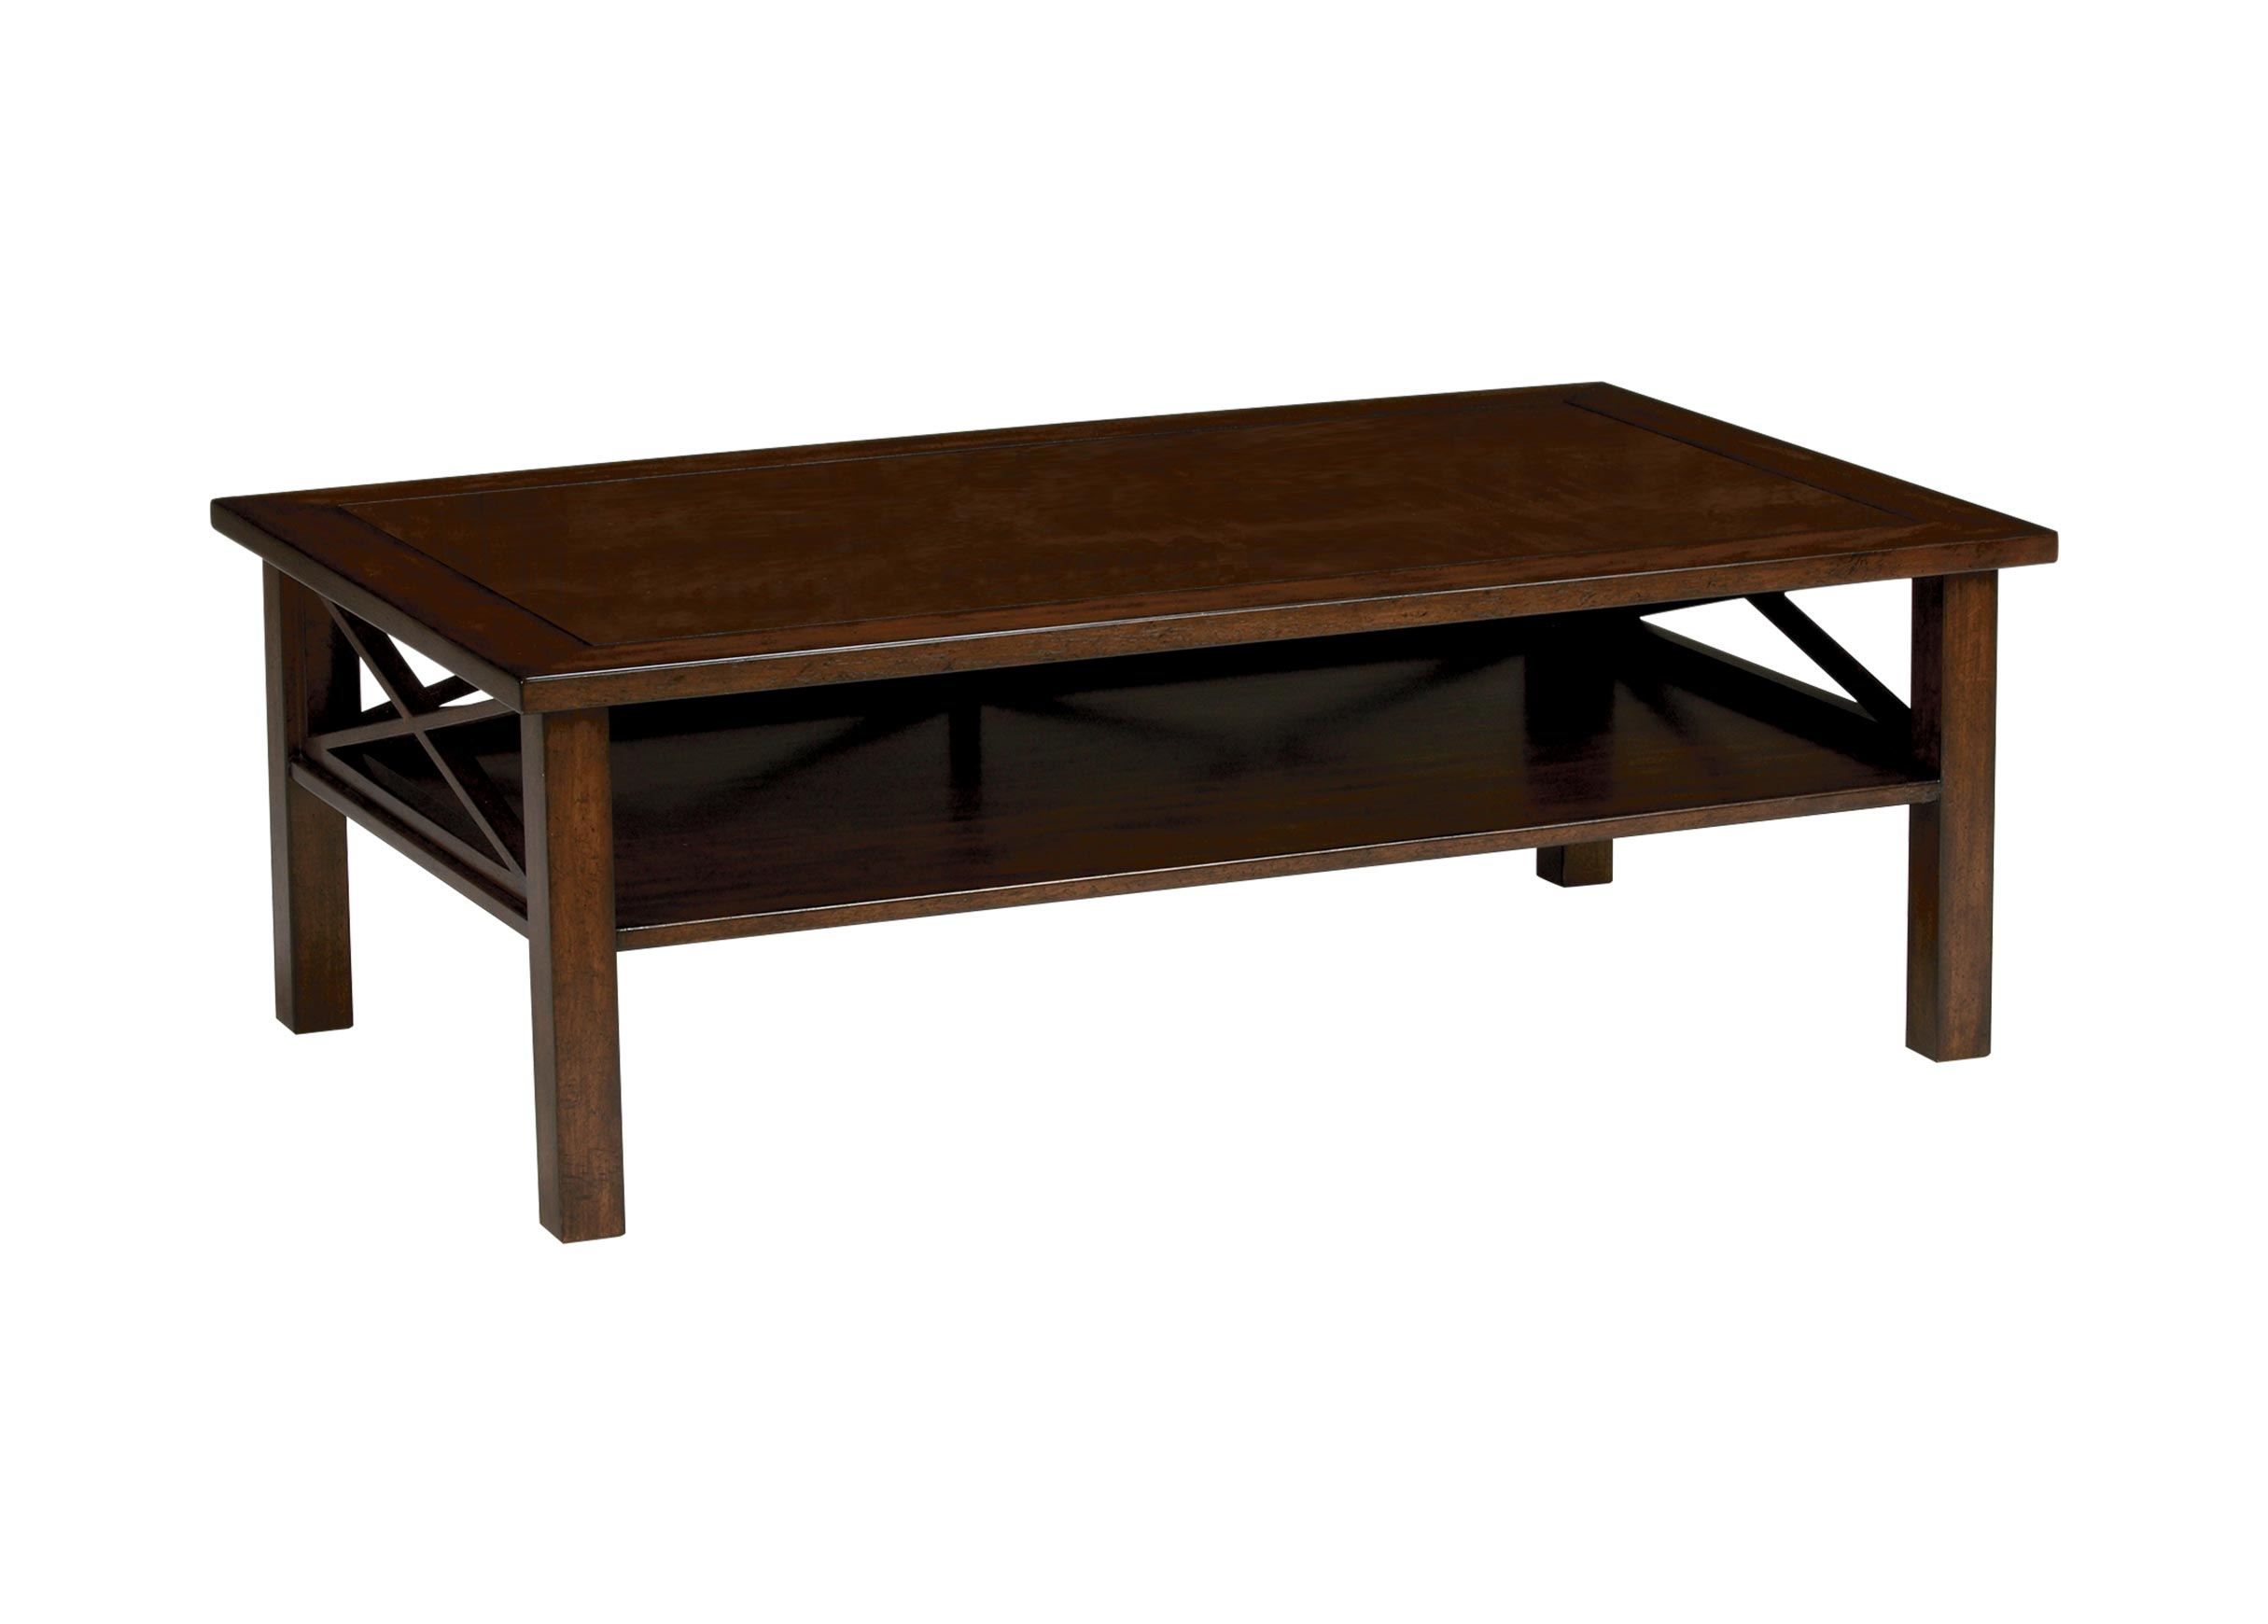 Dexter coffee table coffee tables ethan allen for Tables for coffee shop